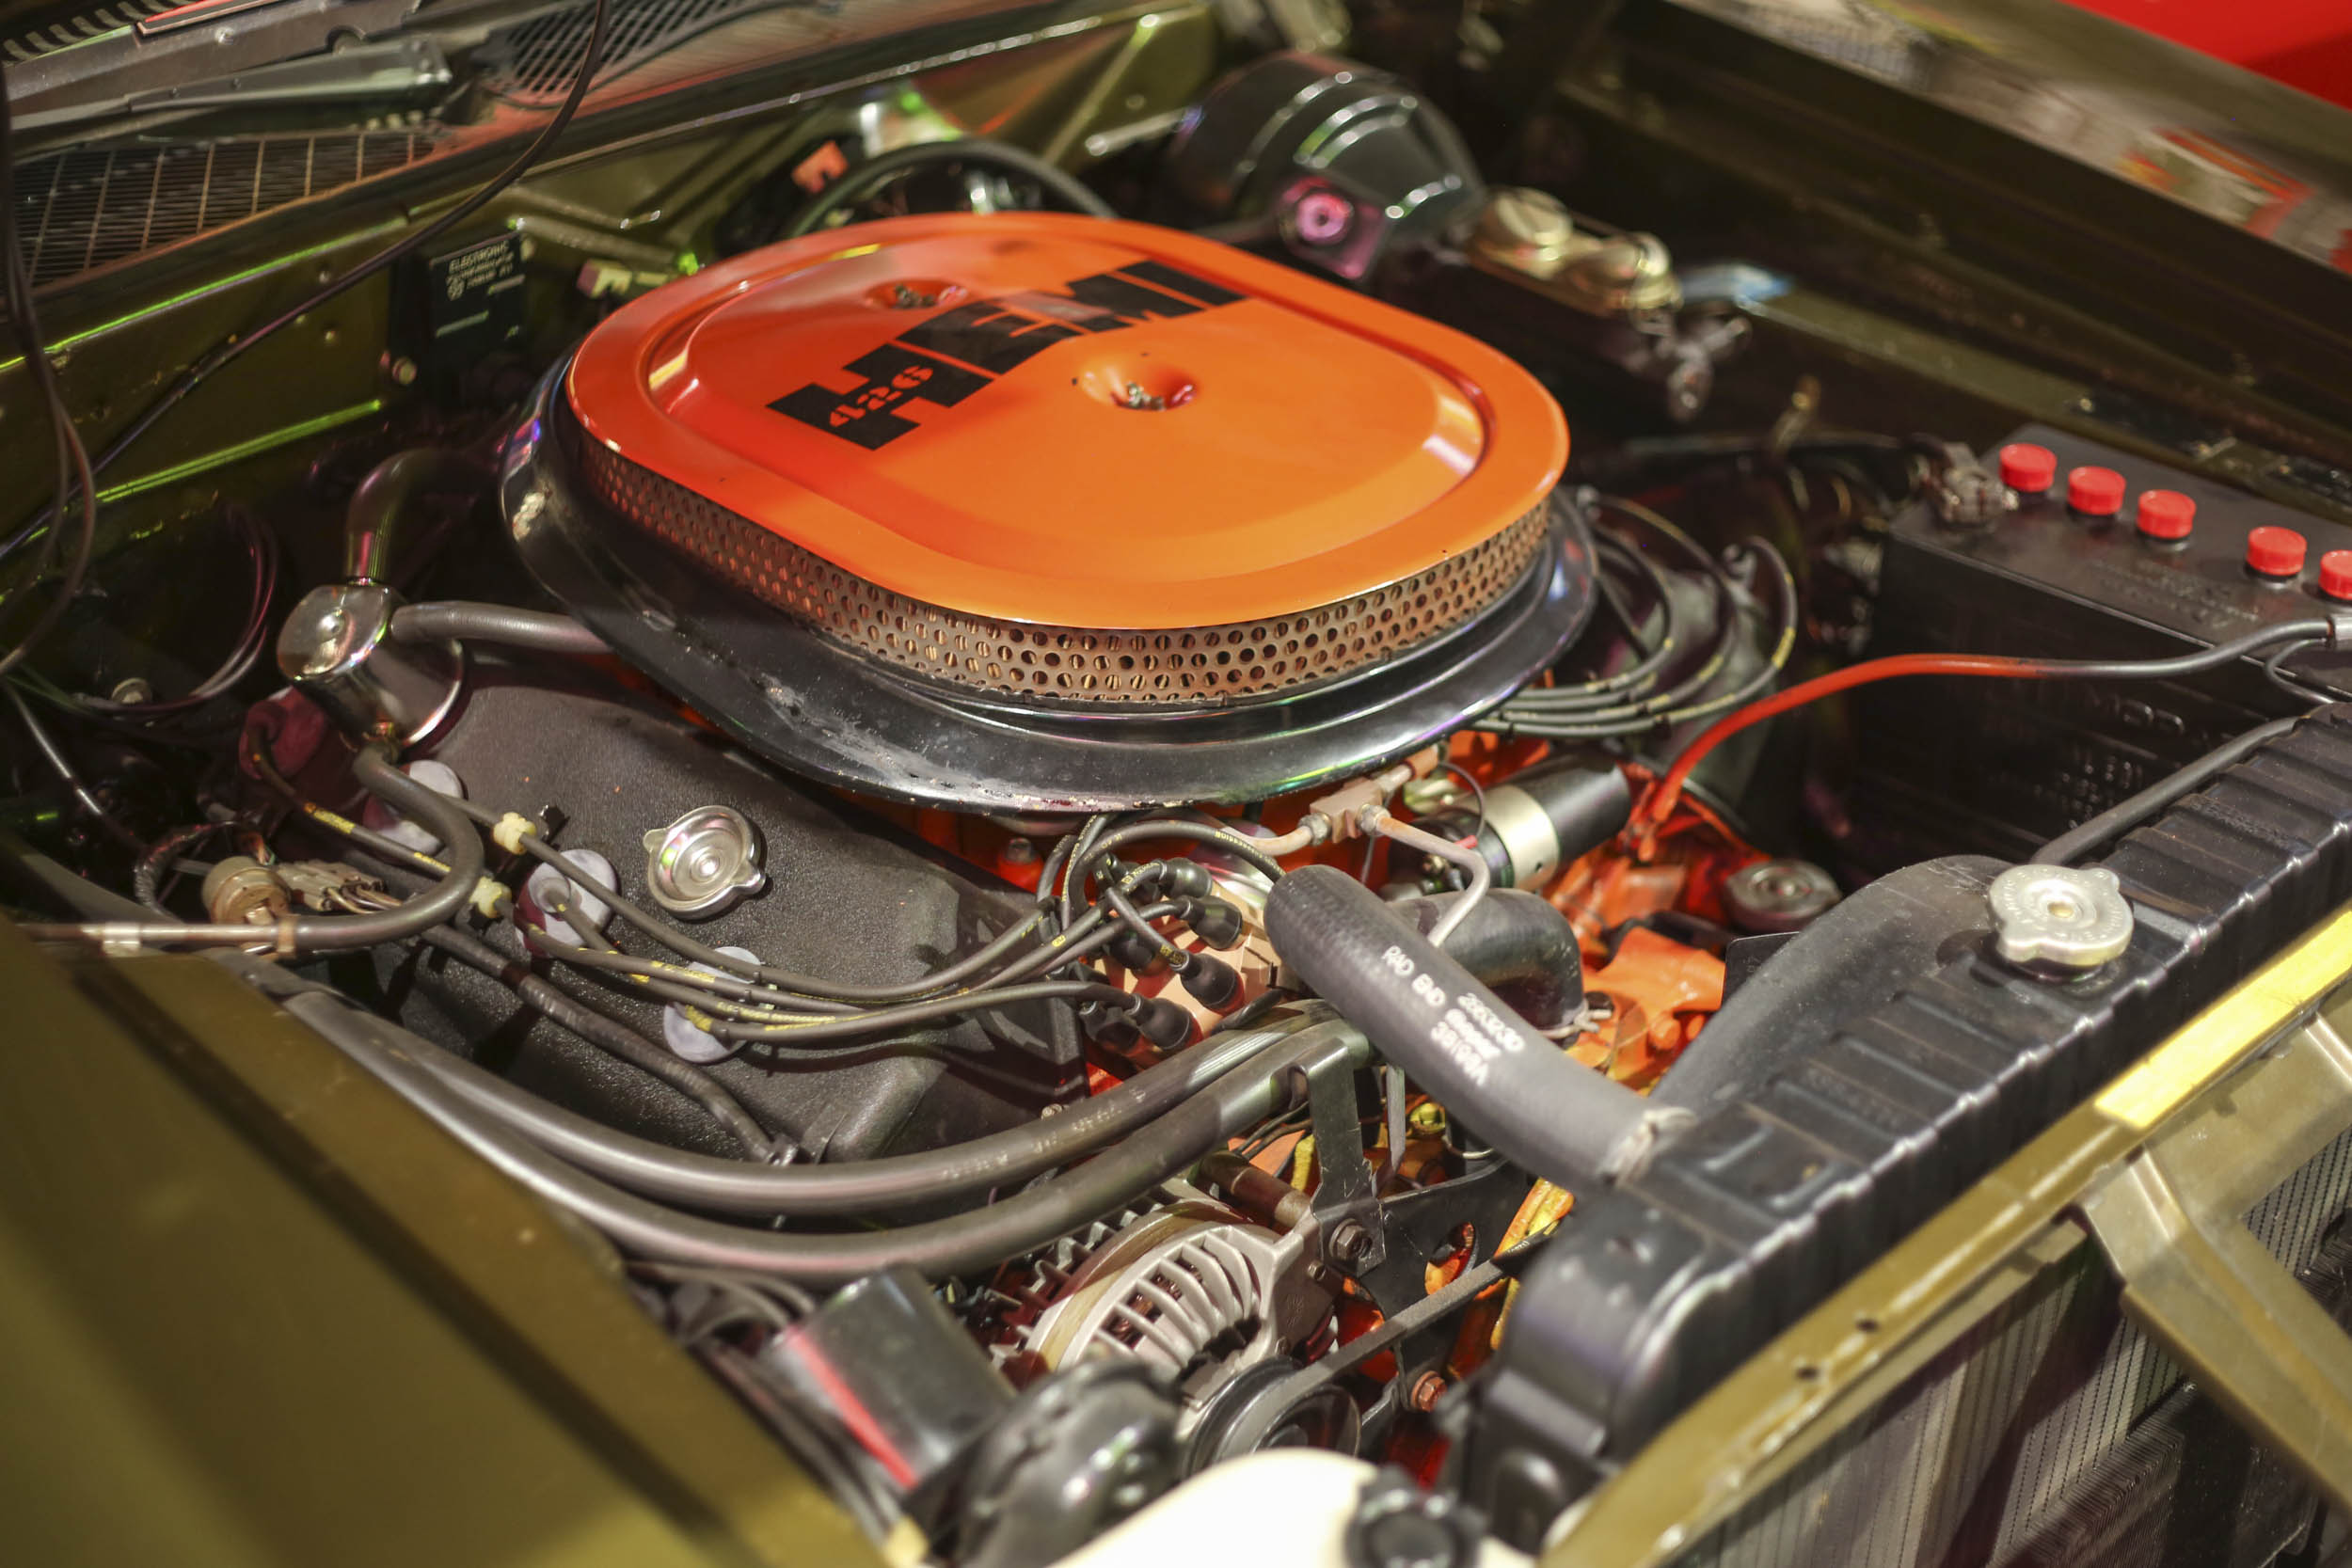 The 1971 Hemi Charger that his father owned is now a cornerstone of Tim's collection.